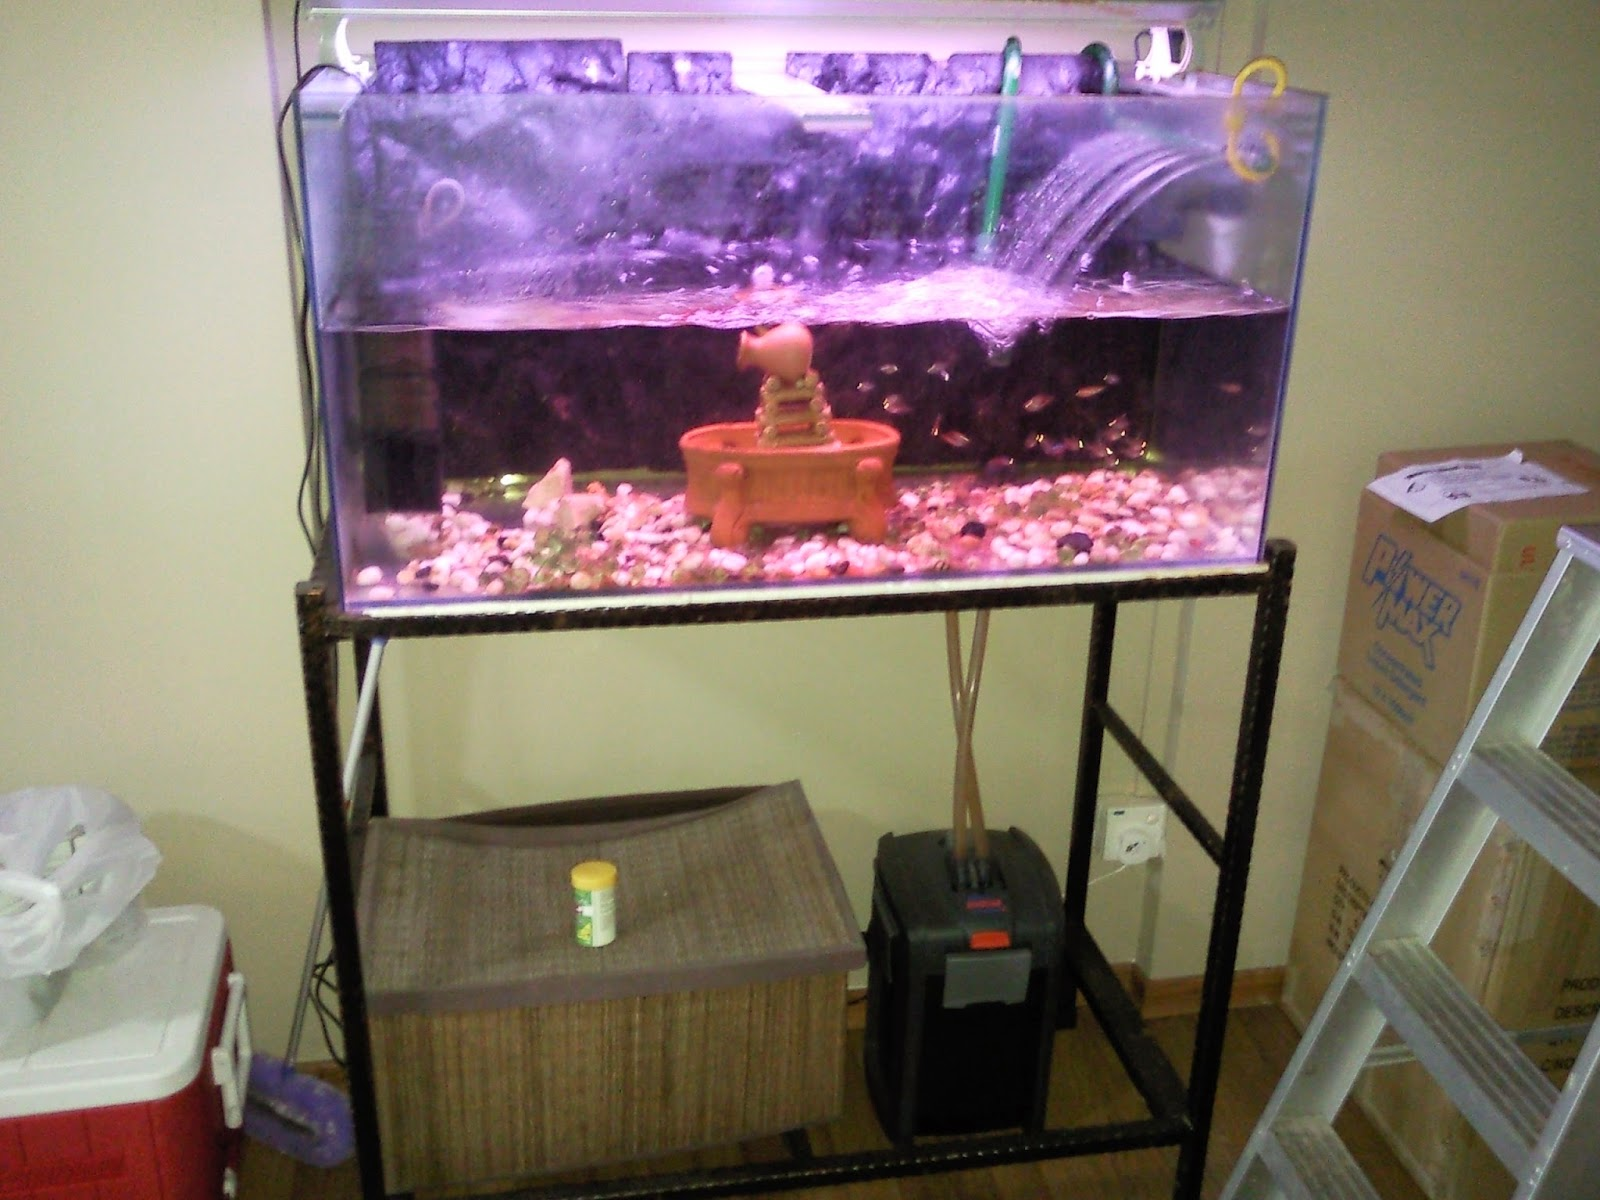 Singapore big sale used 3ft fish tank for sale near jjc for Used fish tank